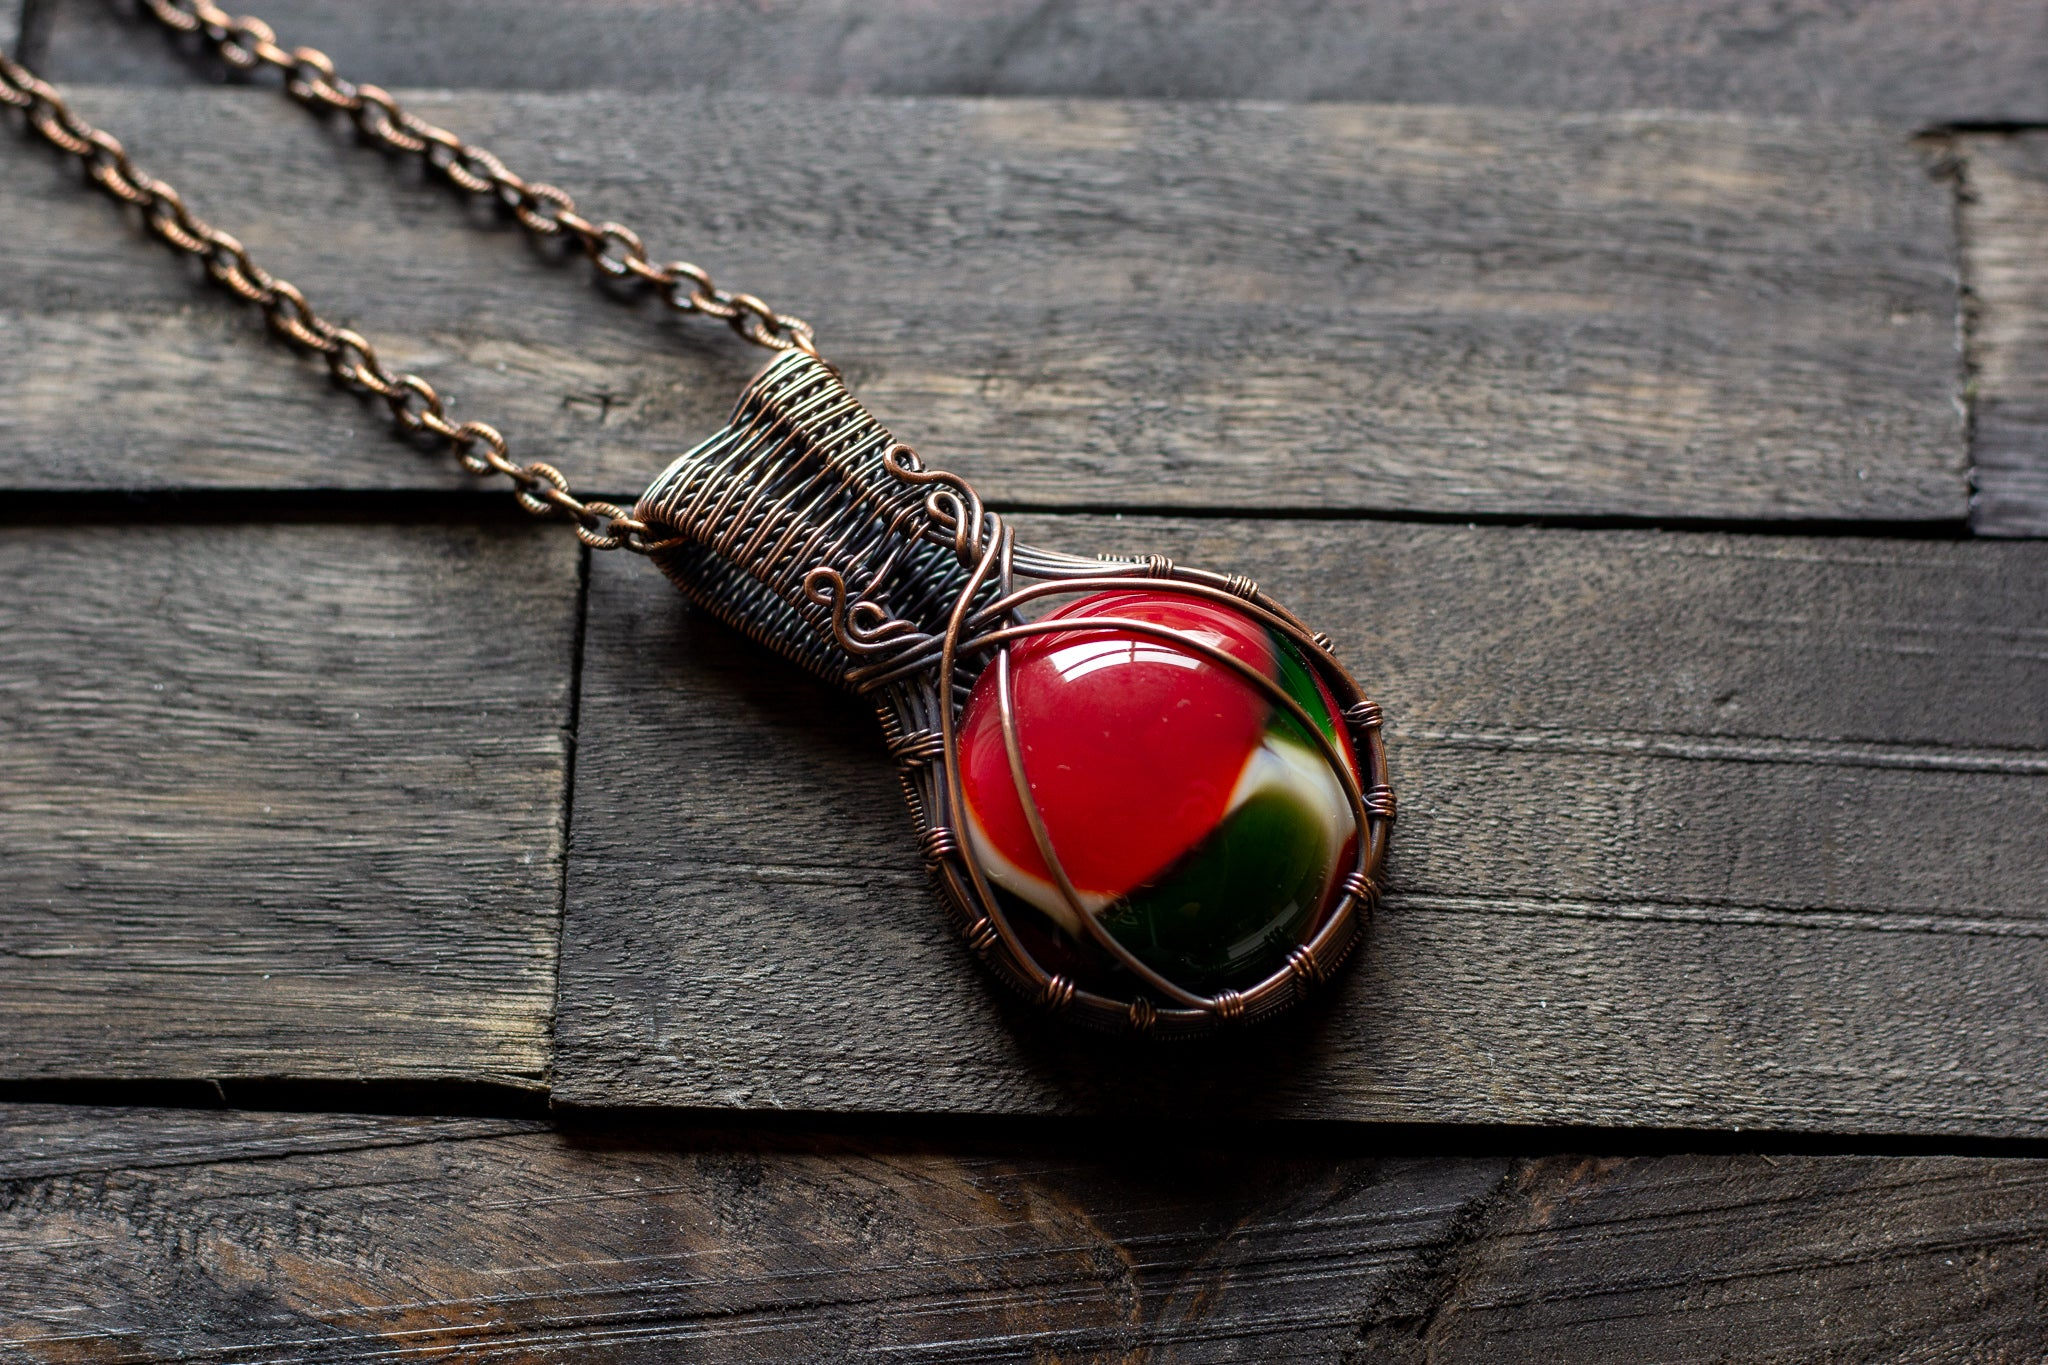 Copper pendant with red, green and white fused glass